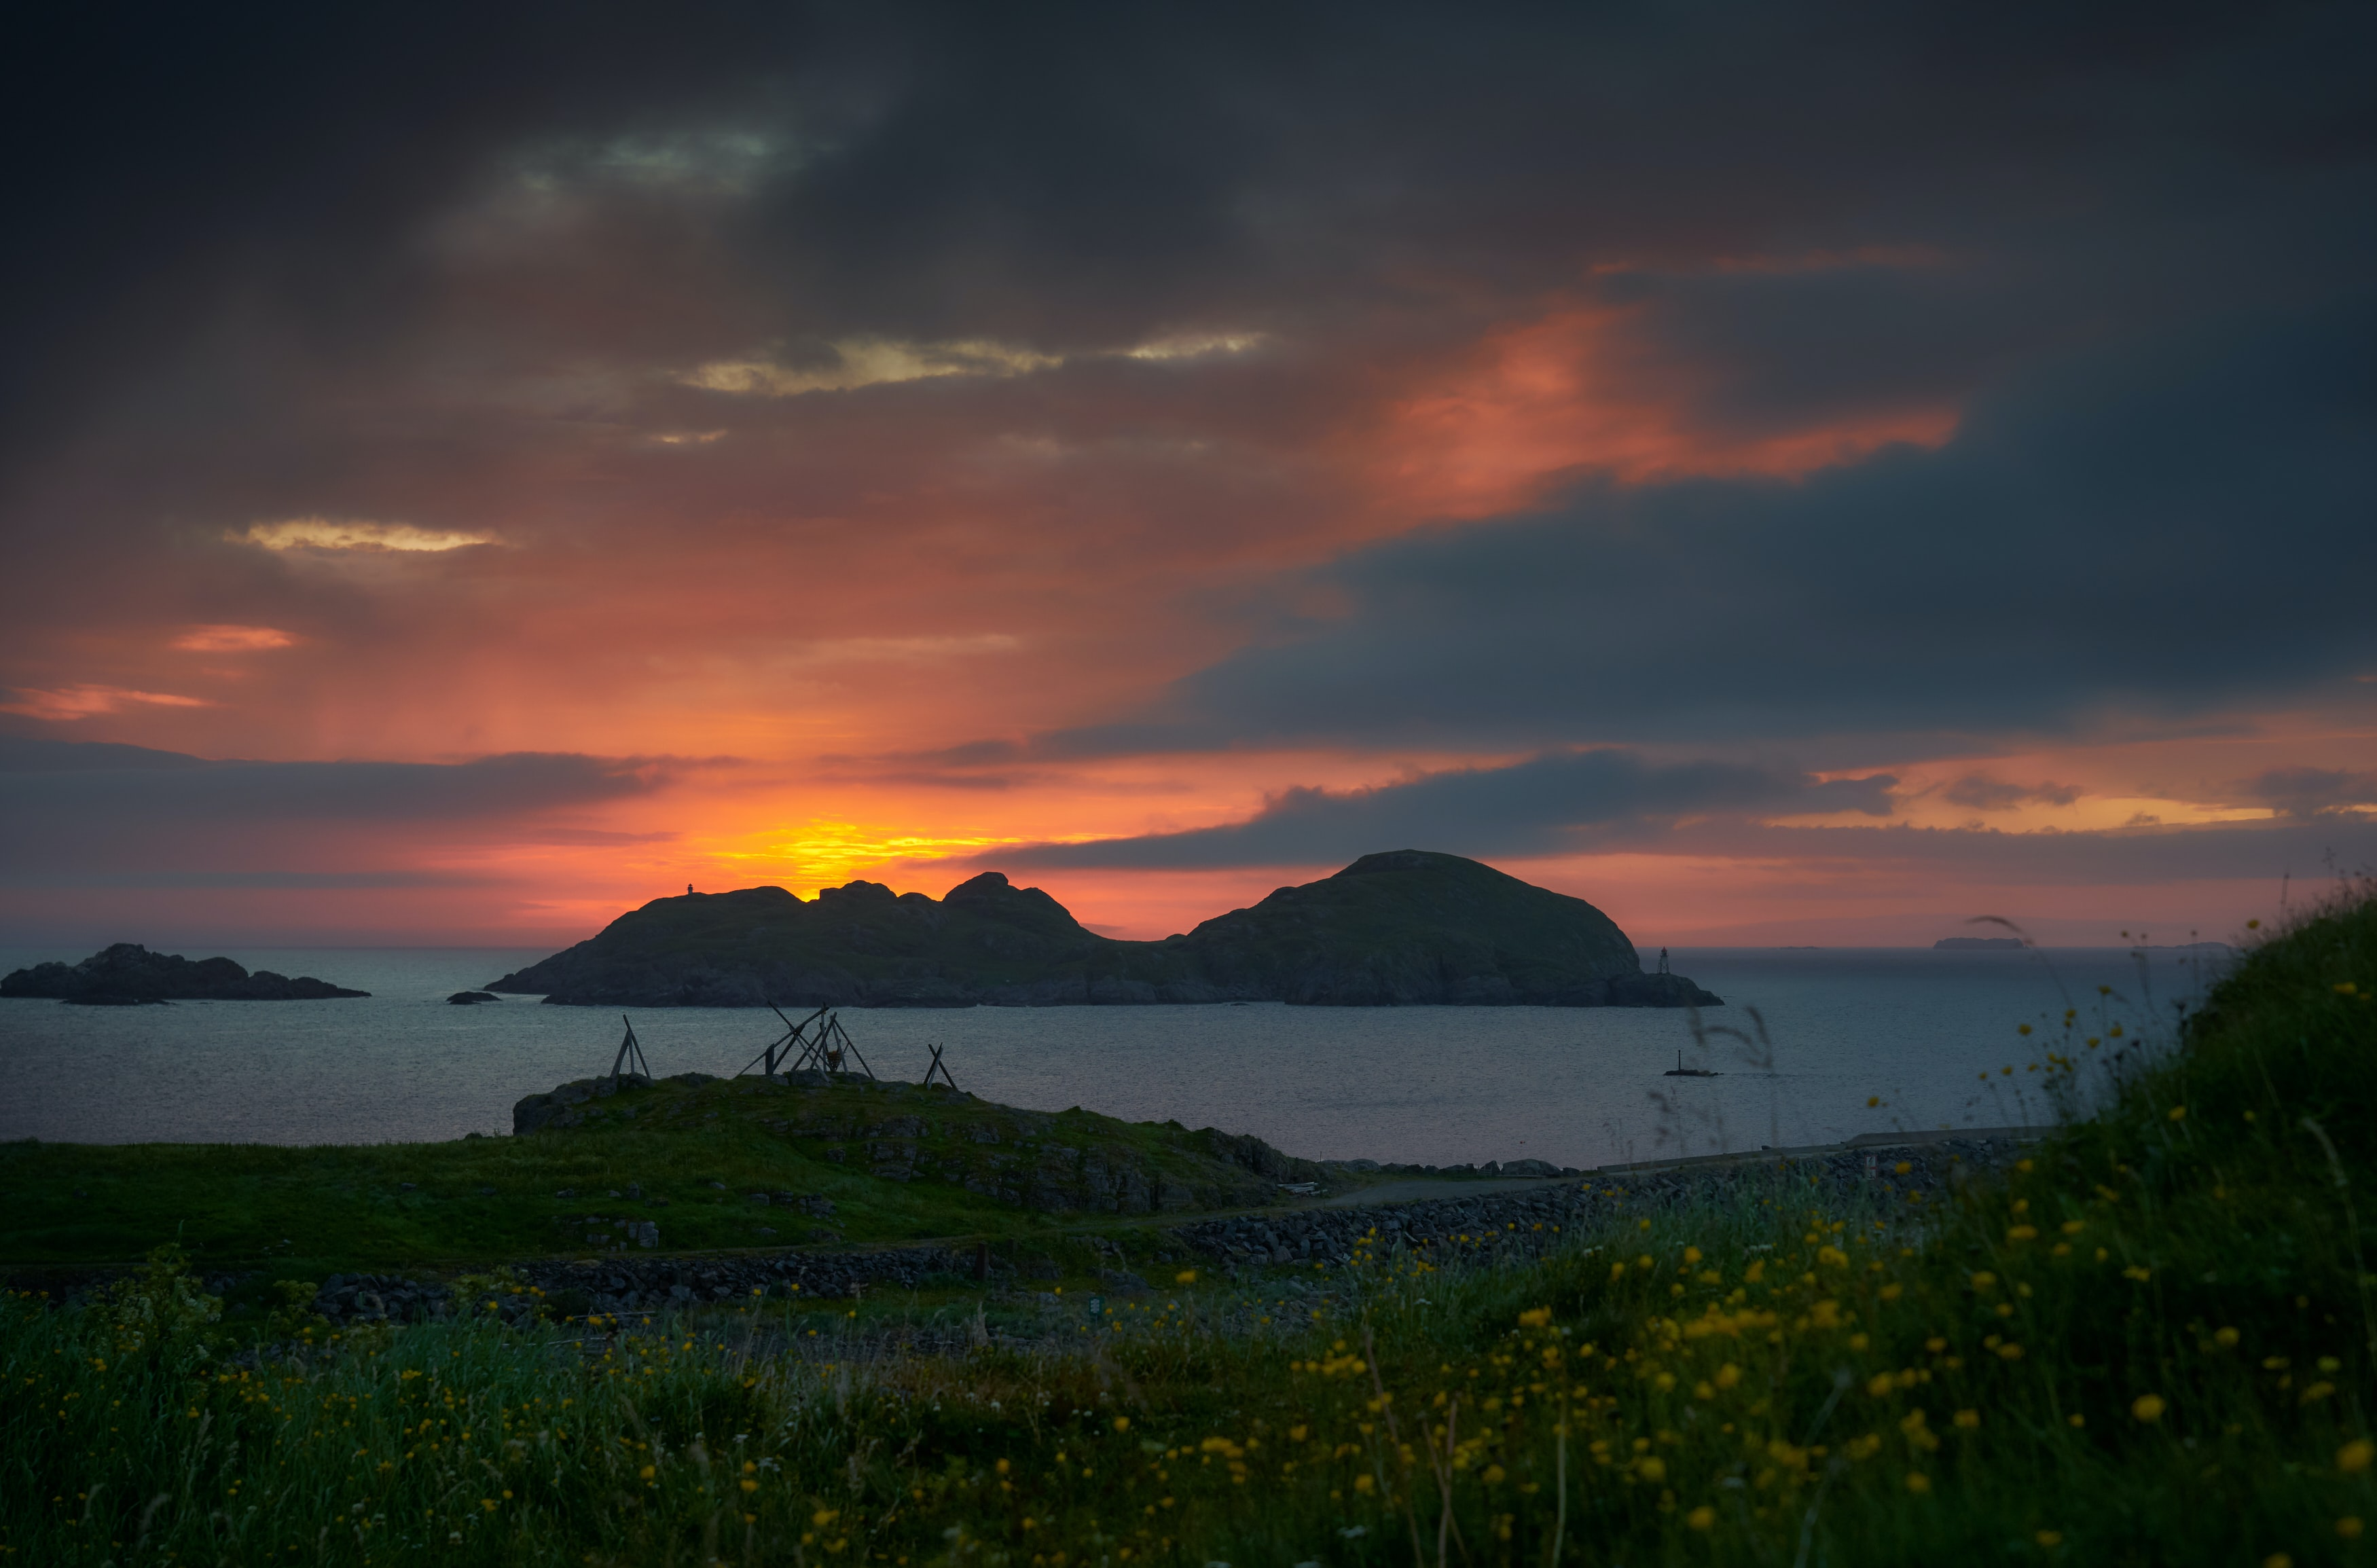 grass field with flower overlooking island in distance during sunset